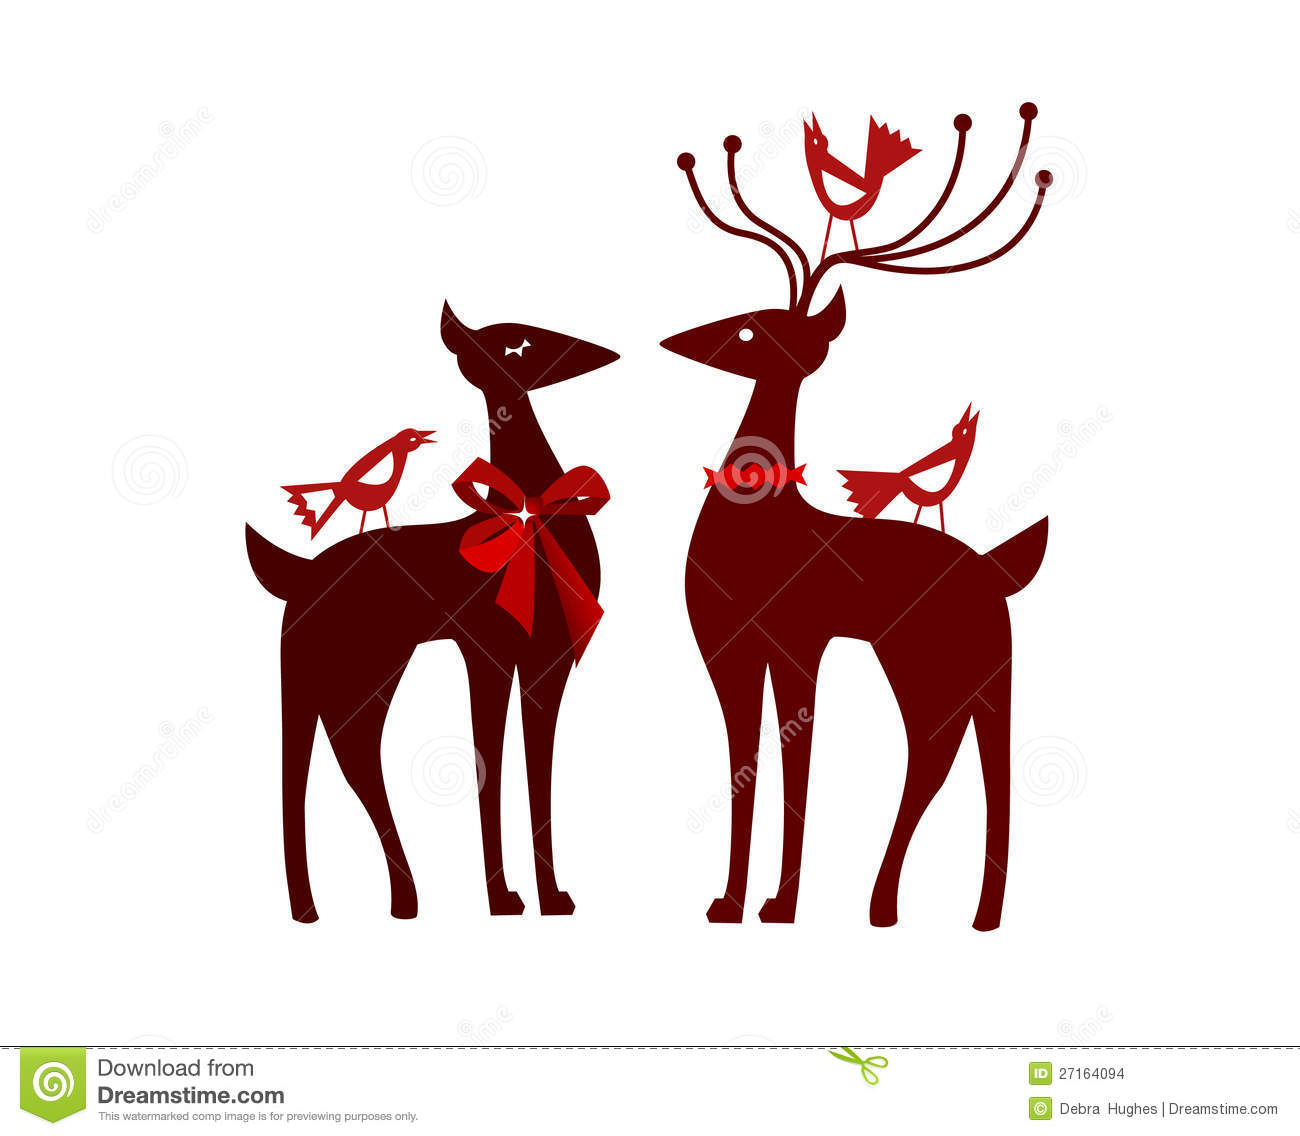 Christmas Reindeer With Nordic Birds Stock Images - Image: 27164094